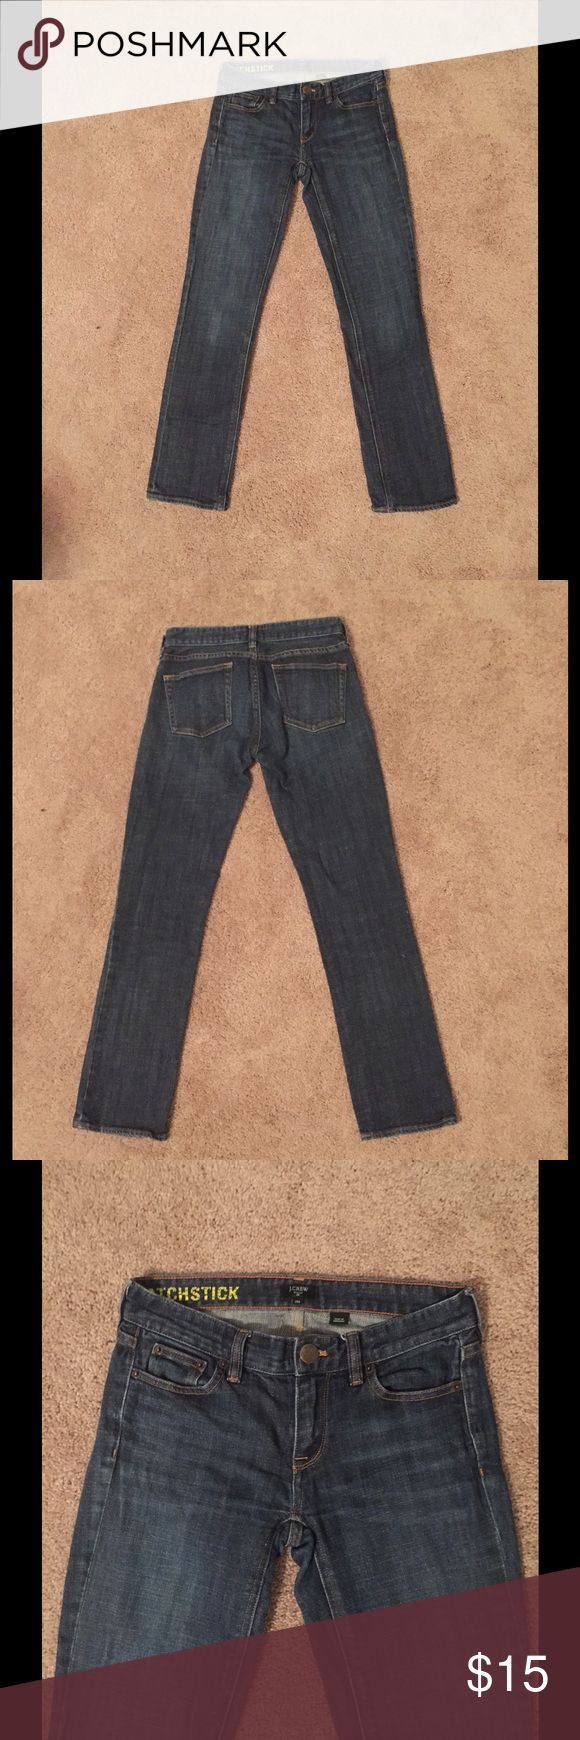 J. Crew Matchstick Jeans Front button replaced. 98% cotton, 2% spandex. Straight leg. SIZE IS 25S WHICH MEANS IT HAS SHORTER LEG LENGTH. Machine wash cold. J. Crew Jeans Straight Leg